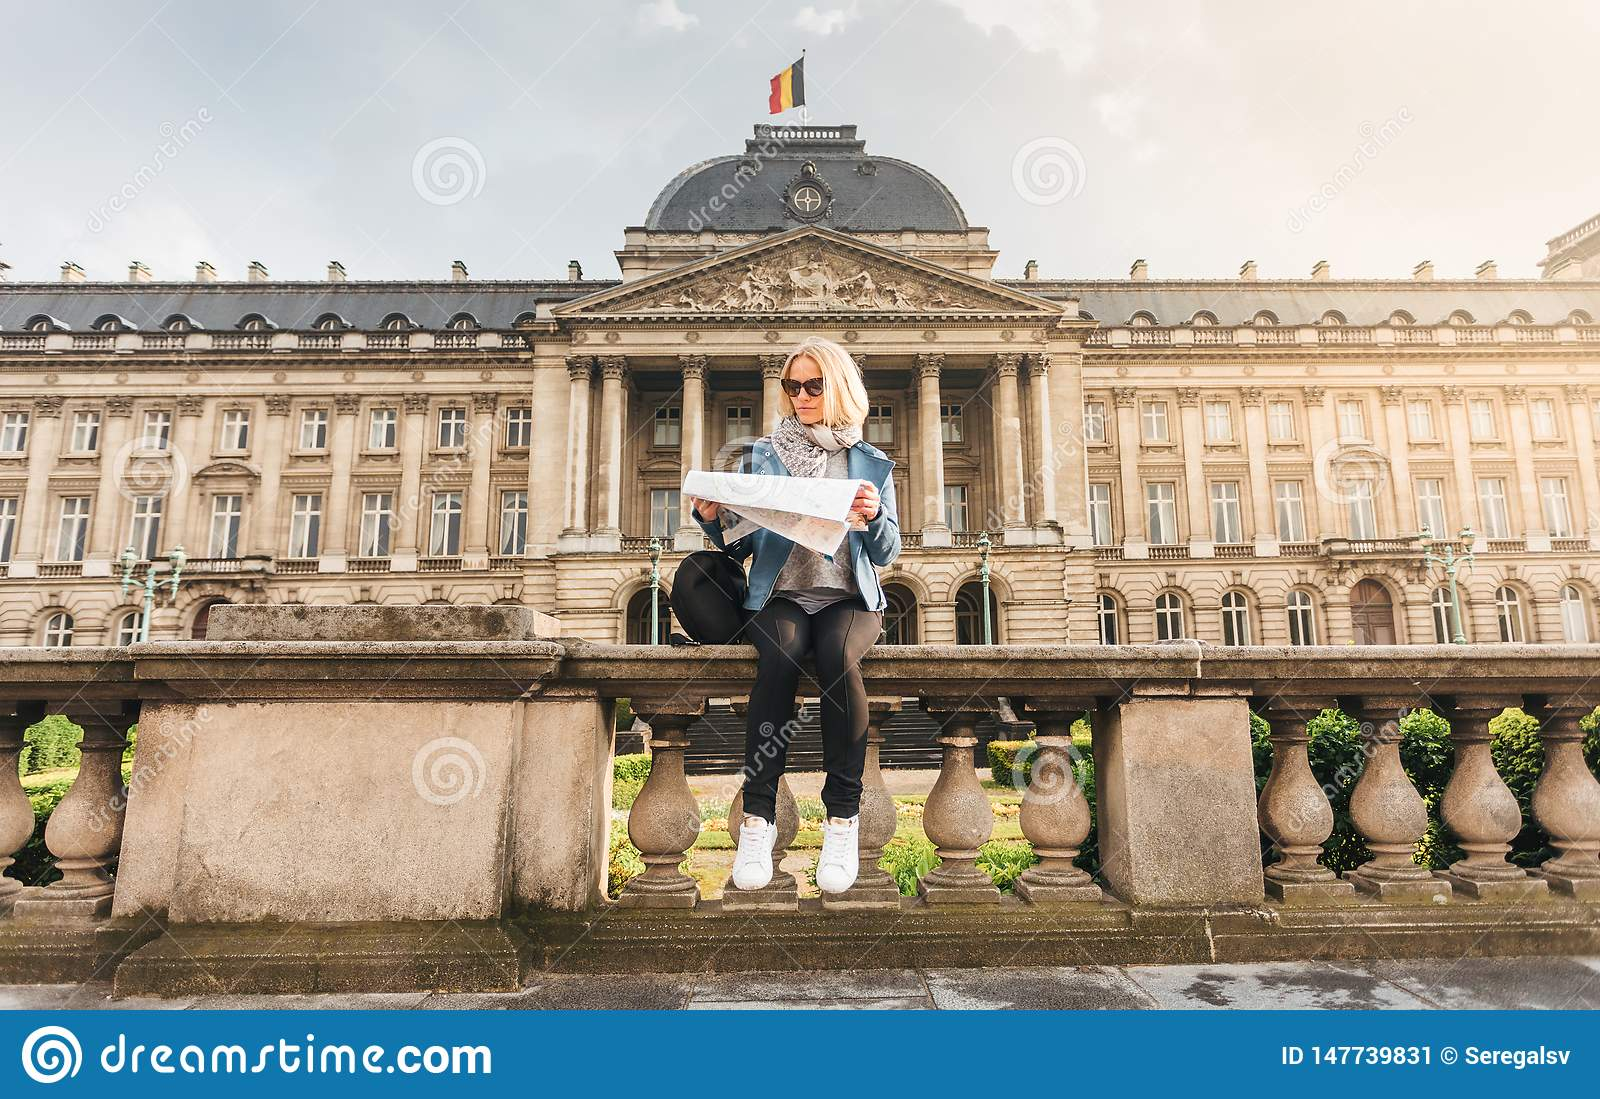 Female traveler sits on the parapet on the background of the Royal Palace in Brussels and looks into the map, Belgium